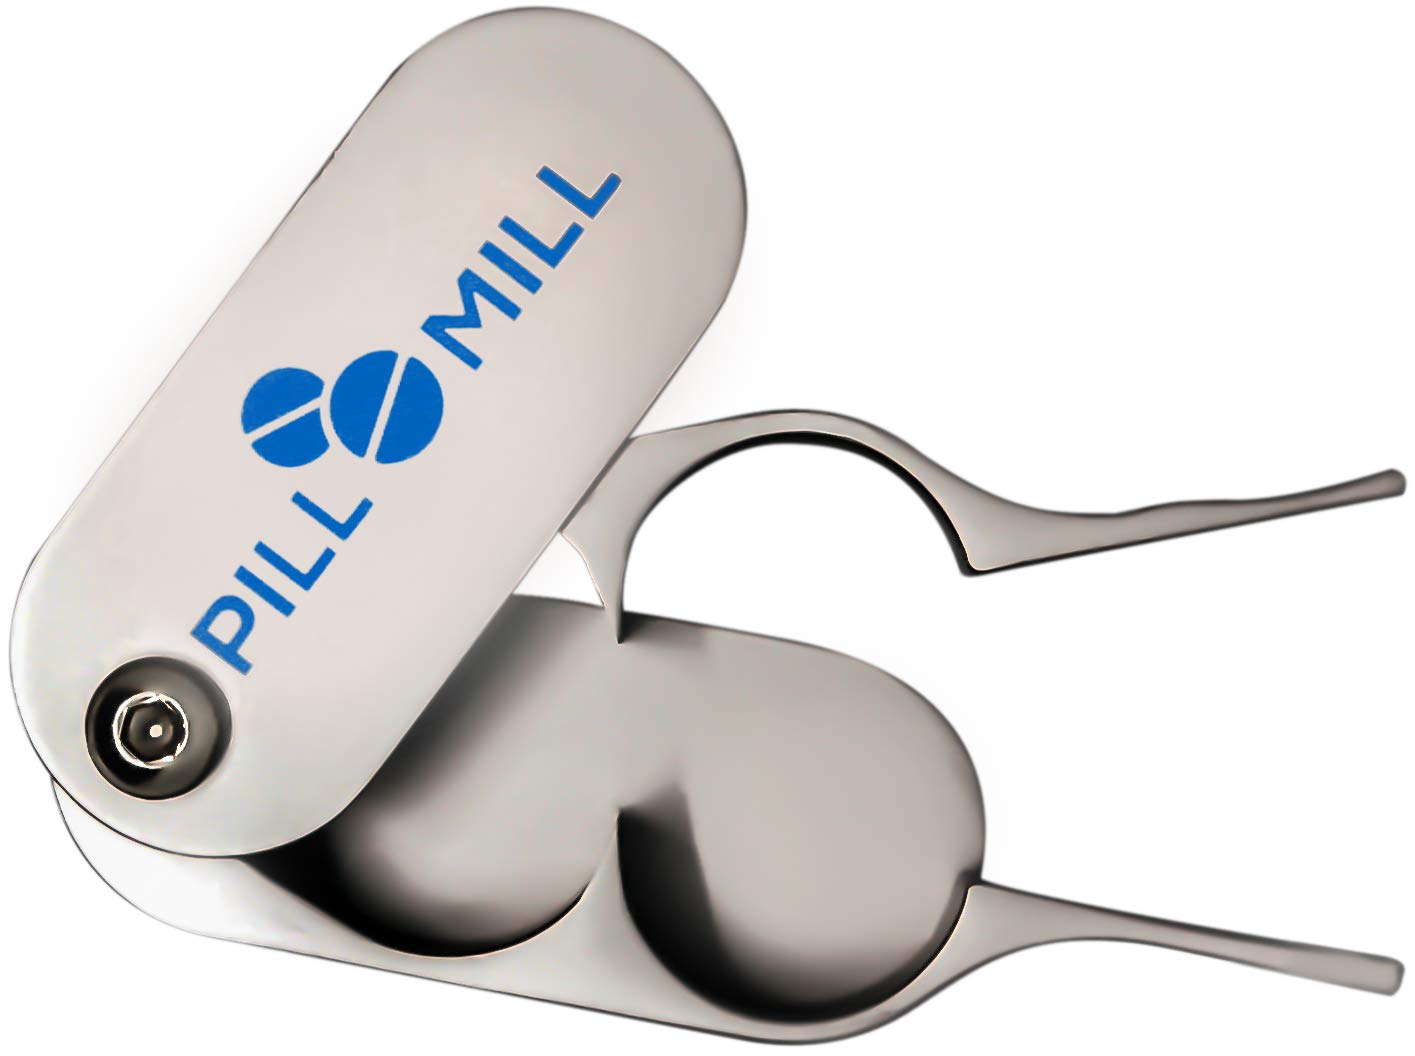 Pill Cutter Splitter by Pill Mill - Metal Blades That Will Never Dull - Grip Handle Helps to Cut Small or Large Pills with Ease - Light and Durable Tablet Divider - Perfect Medicine Slicer for Travel